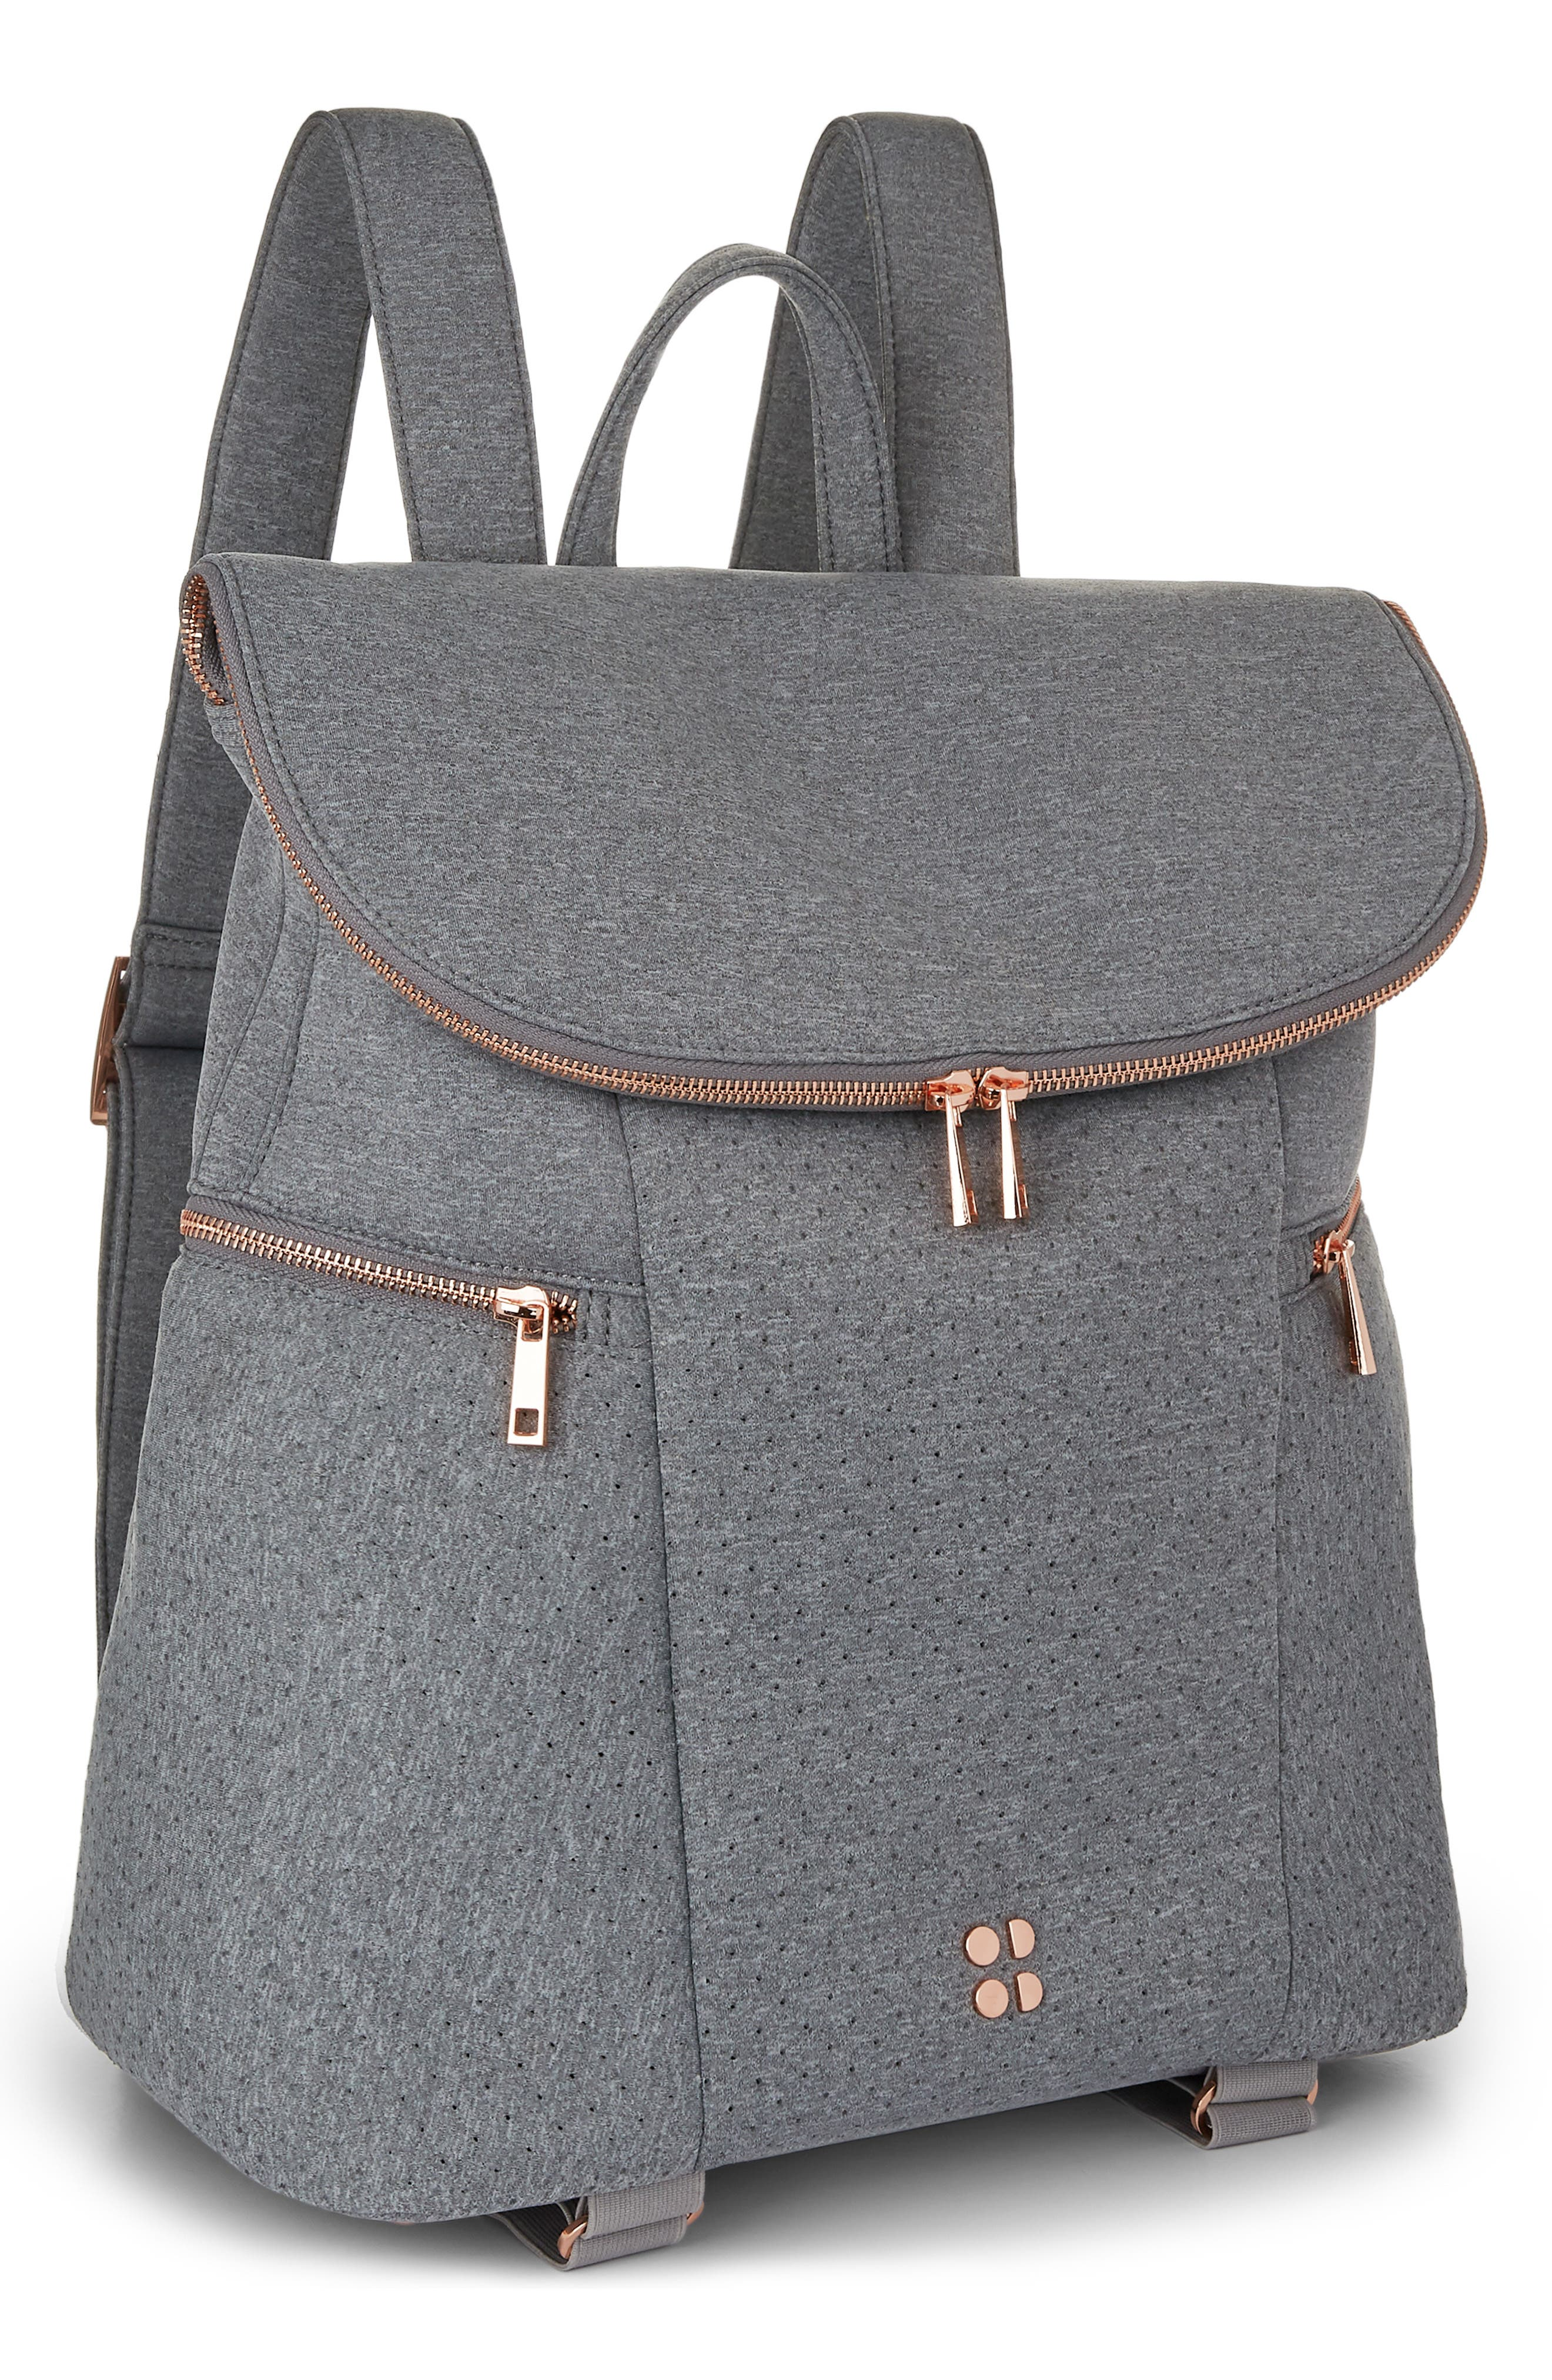 All Sport Backpack,                         Main,                         color, CHARCOAL MARL